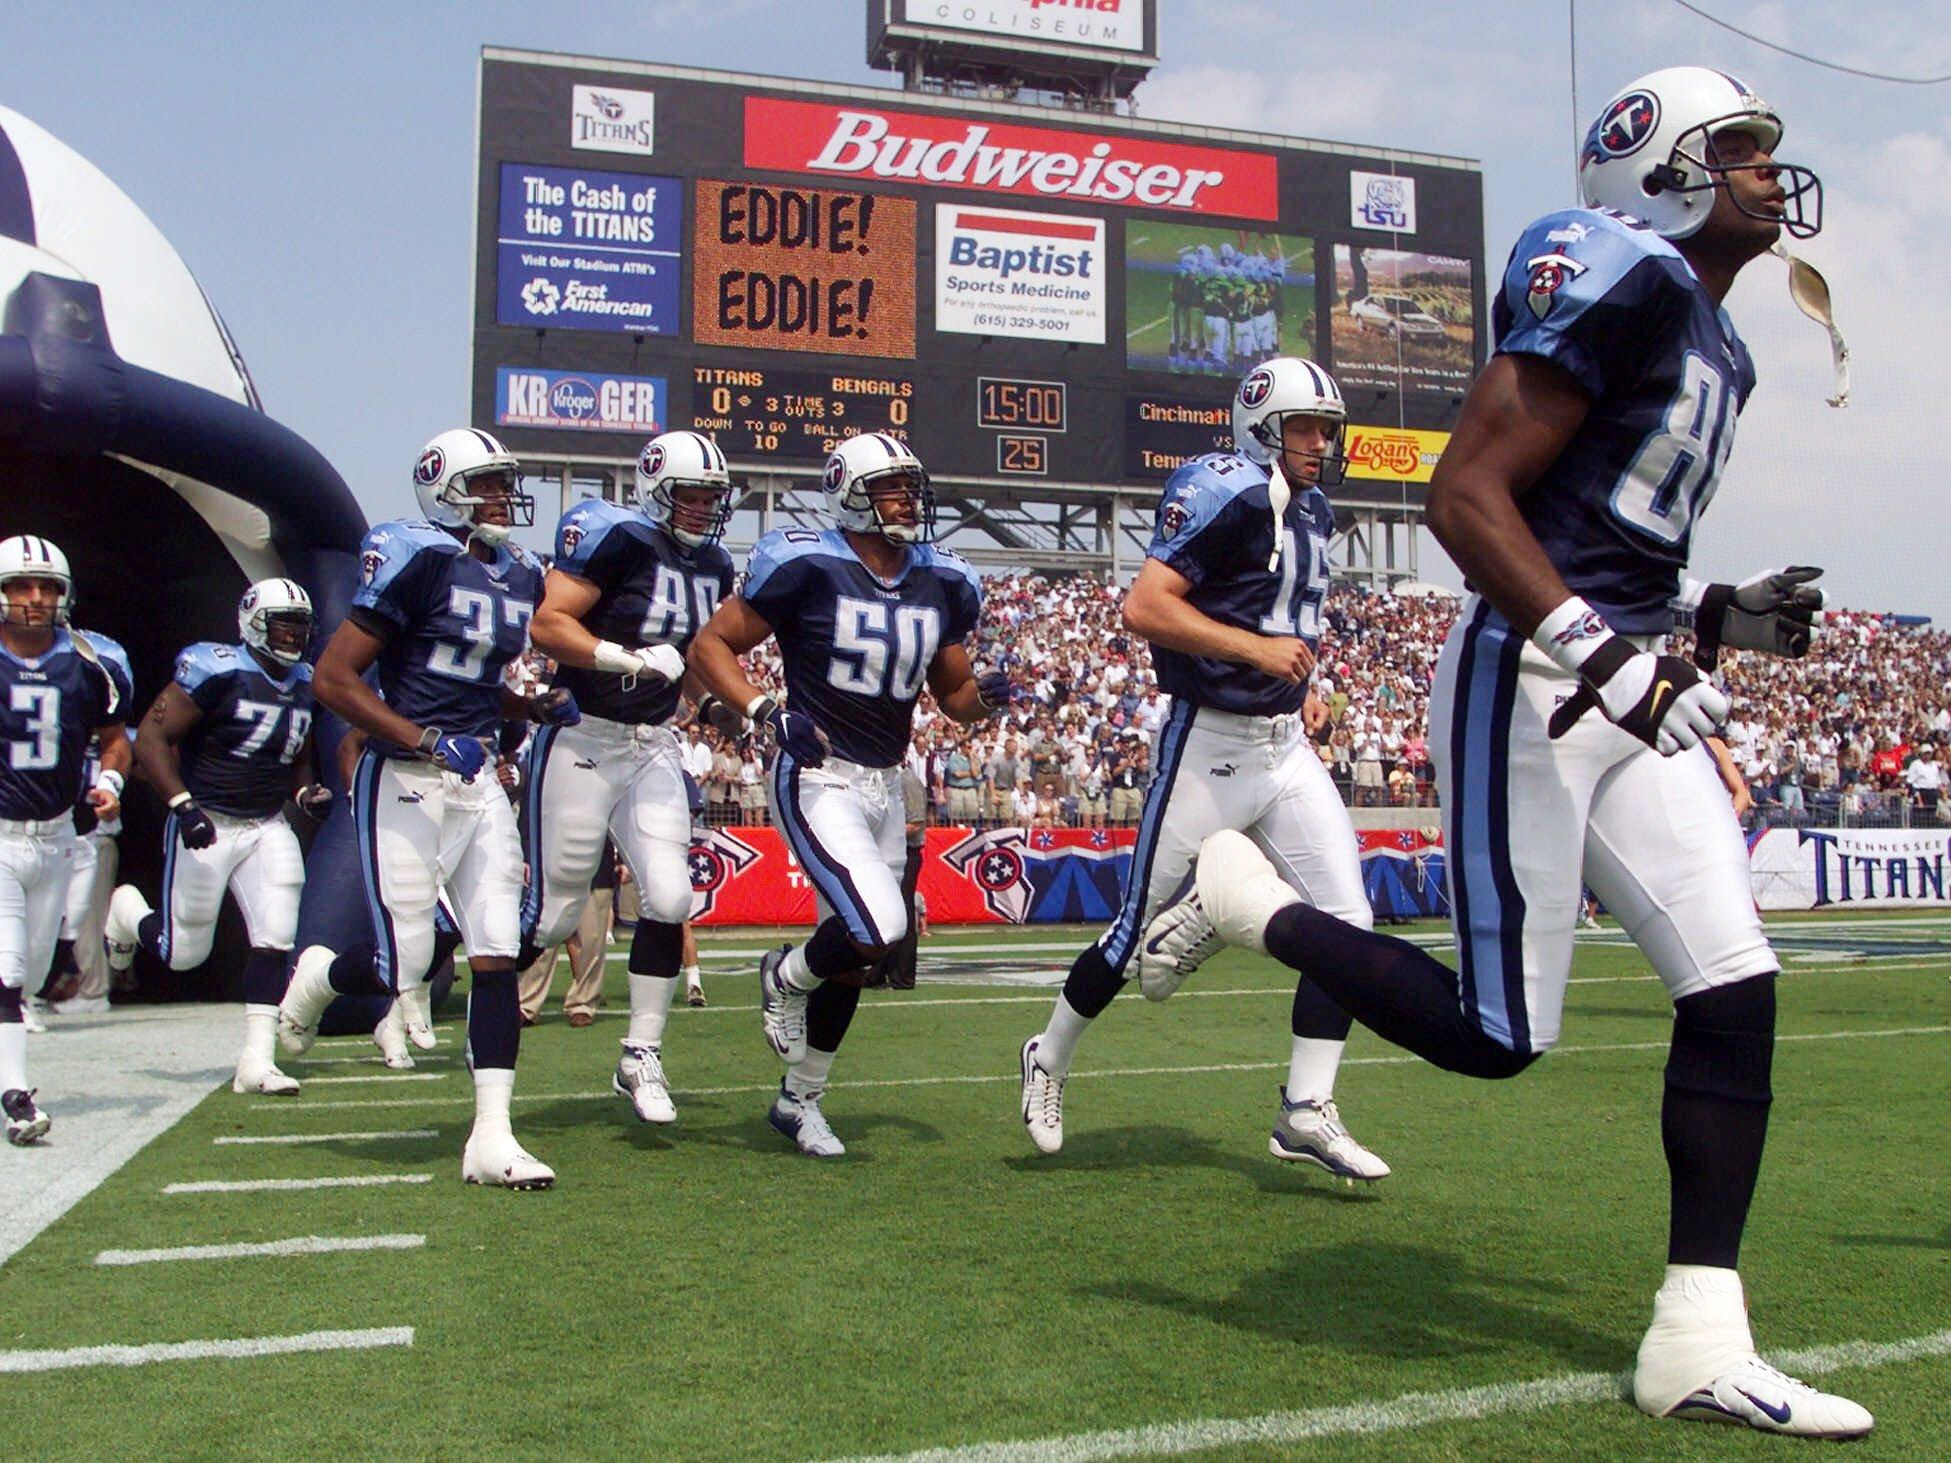 Tennessee Titans wide receiver Joey Kent, right, and his teammates run on to the field for their season-opening game against the Cincinnati Bengals at their new Adelphia Coliseum in Nashville Sept. 12, 1999. The Titans defeated the Bengals, 36-35.